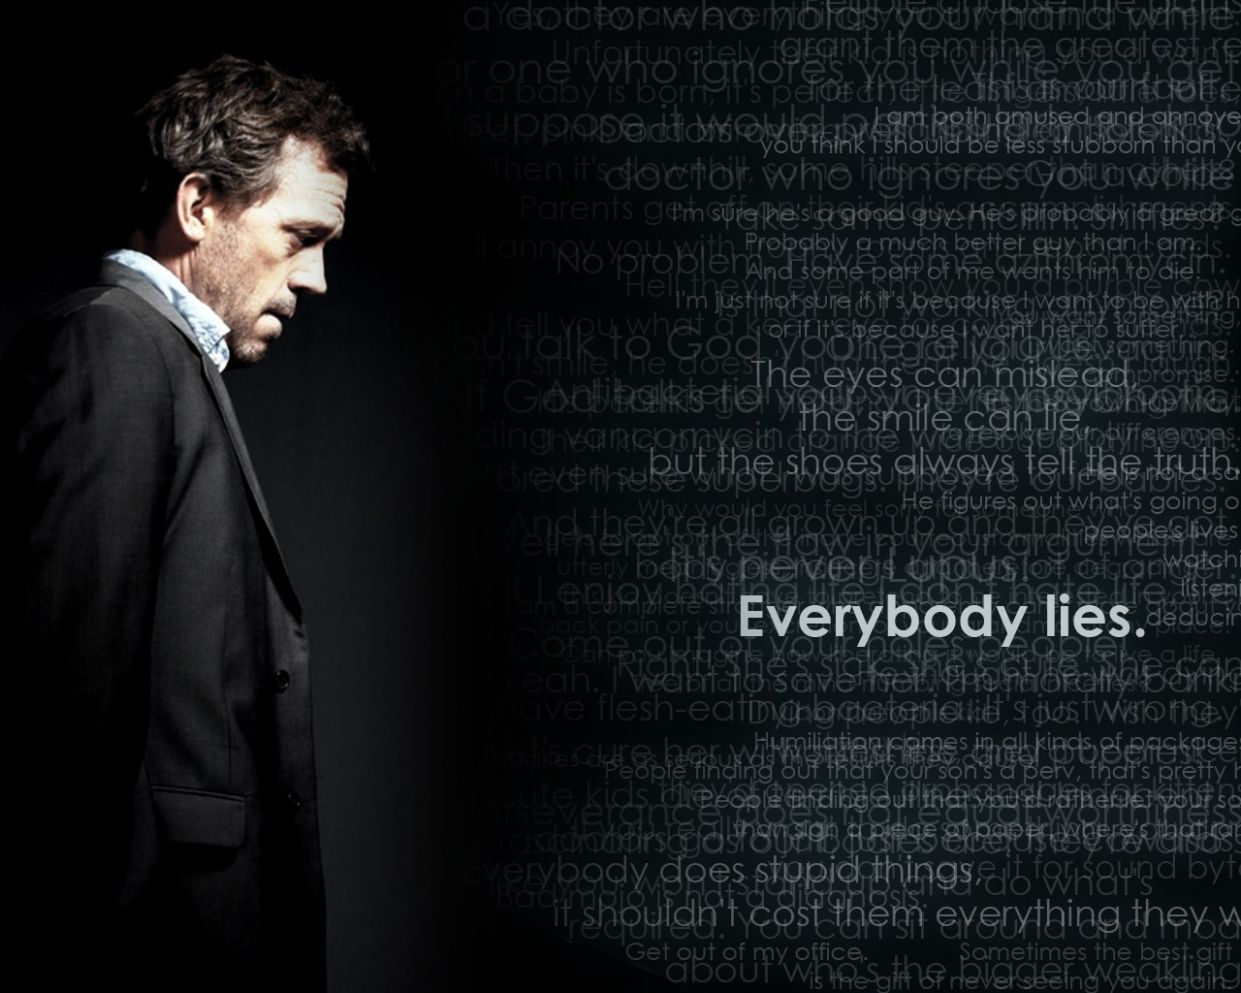 Gregory House Quotes Inspiring. QuotesGram